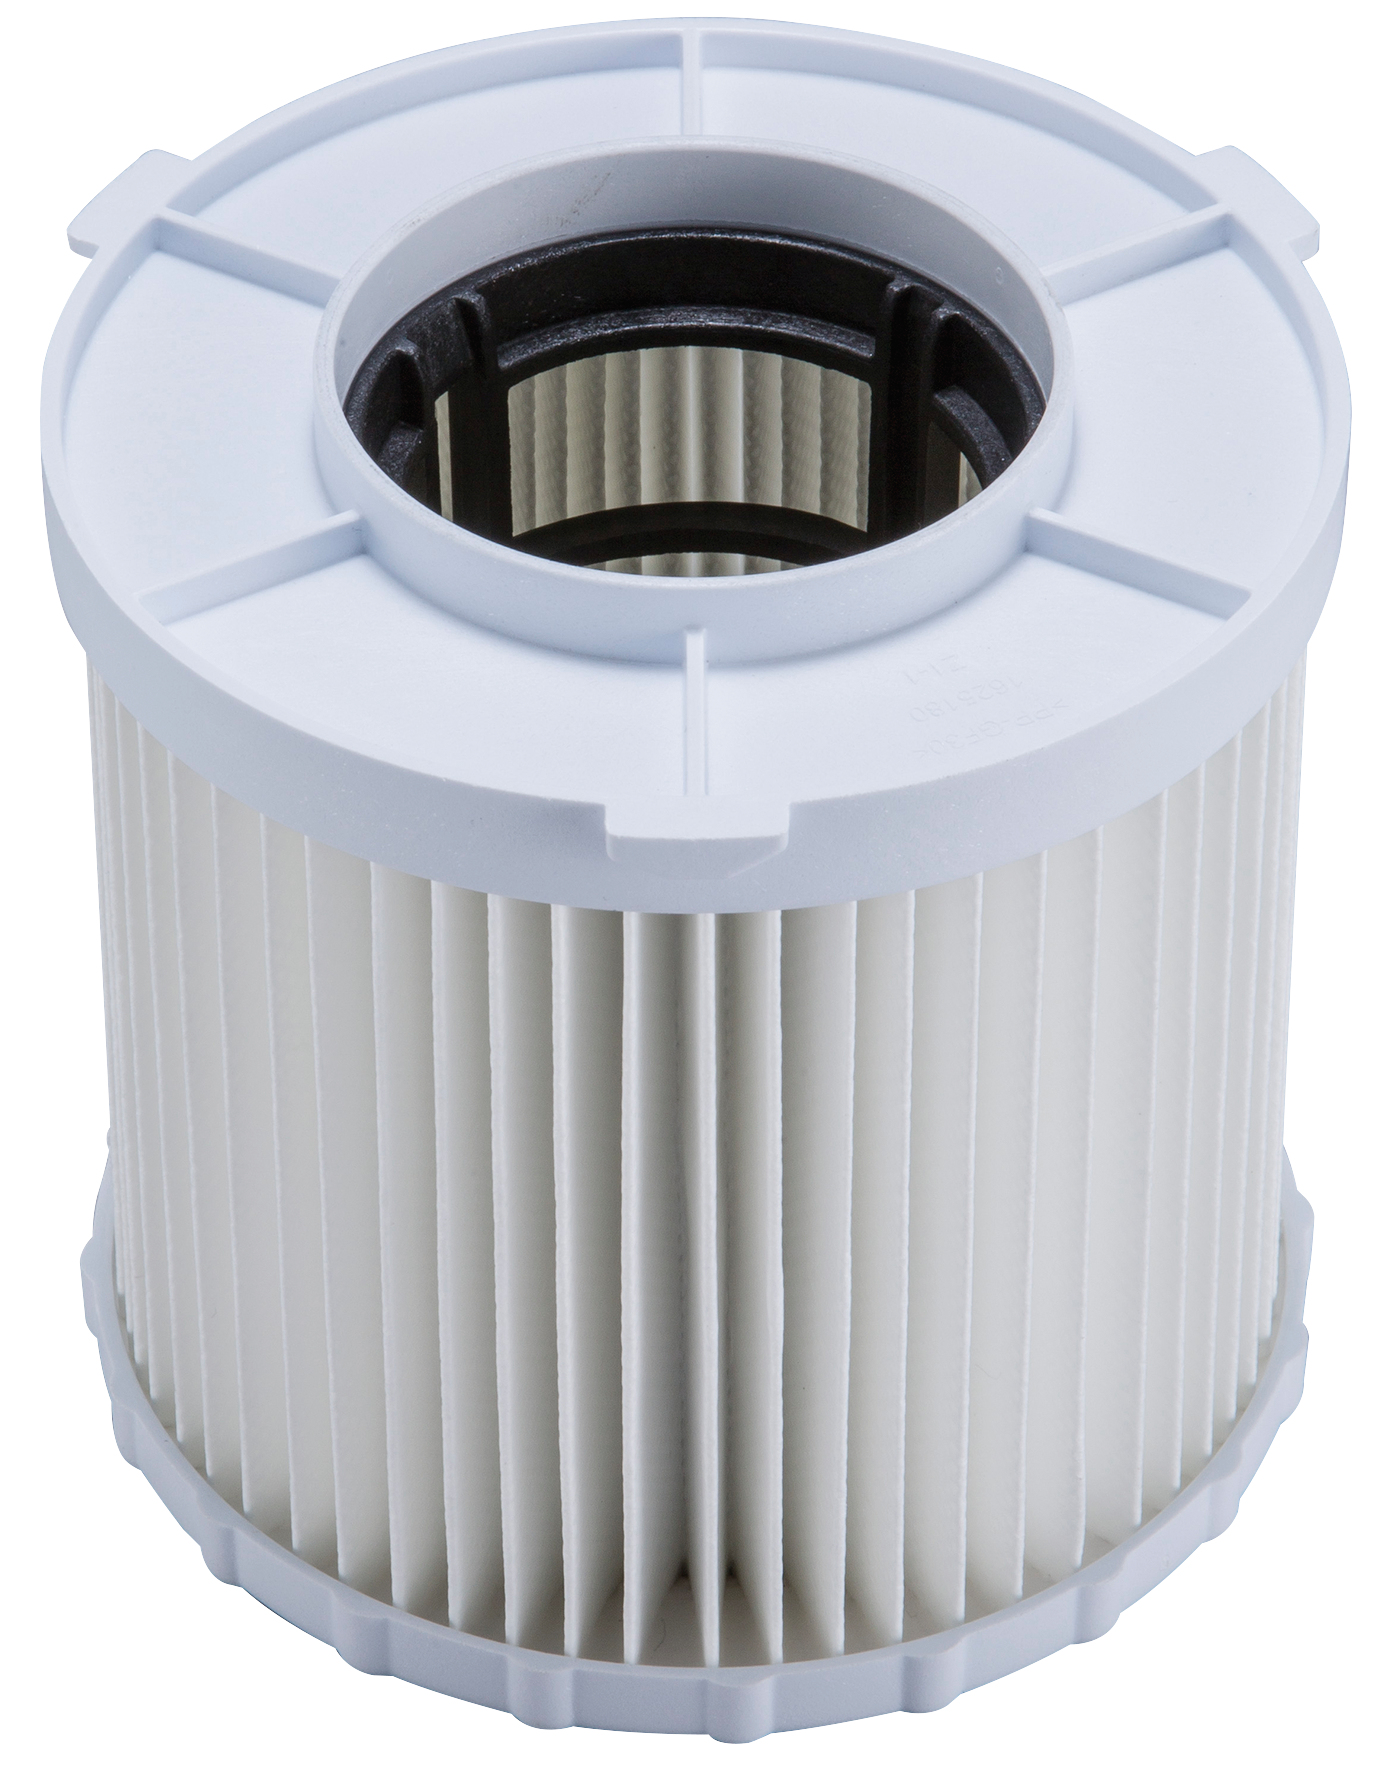 Makita Spare Part - Filter for DVC750L Vacuum Cleaner